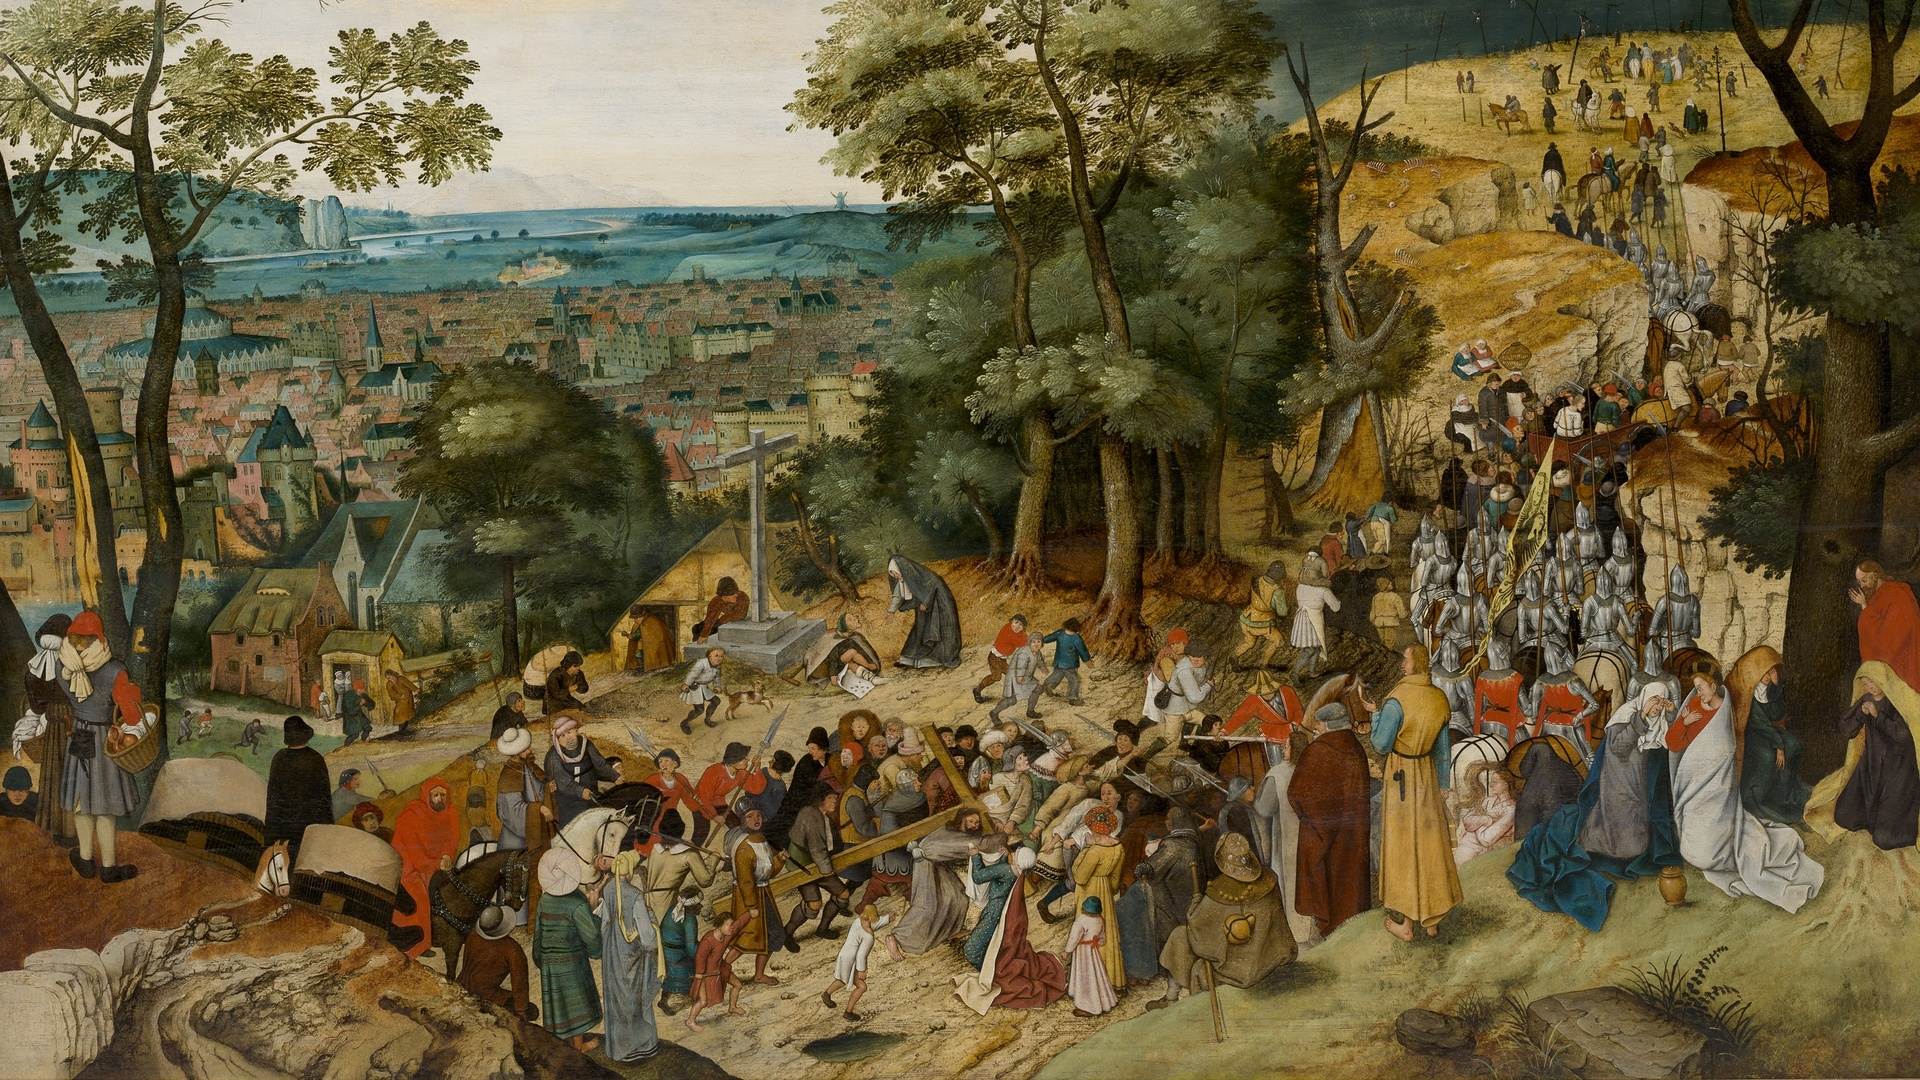 Brueghel and contemporaries: art as covert resistance?